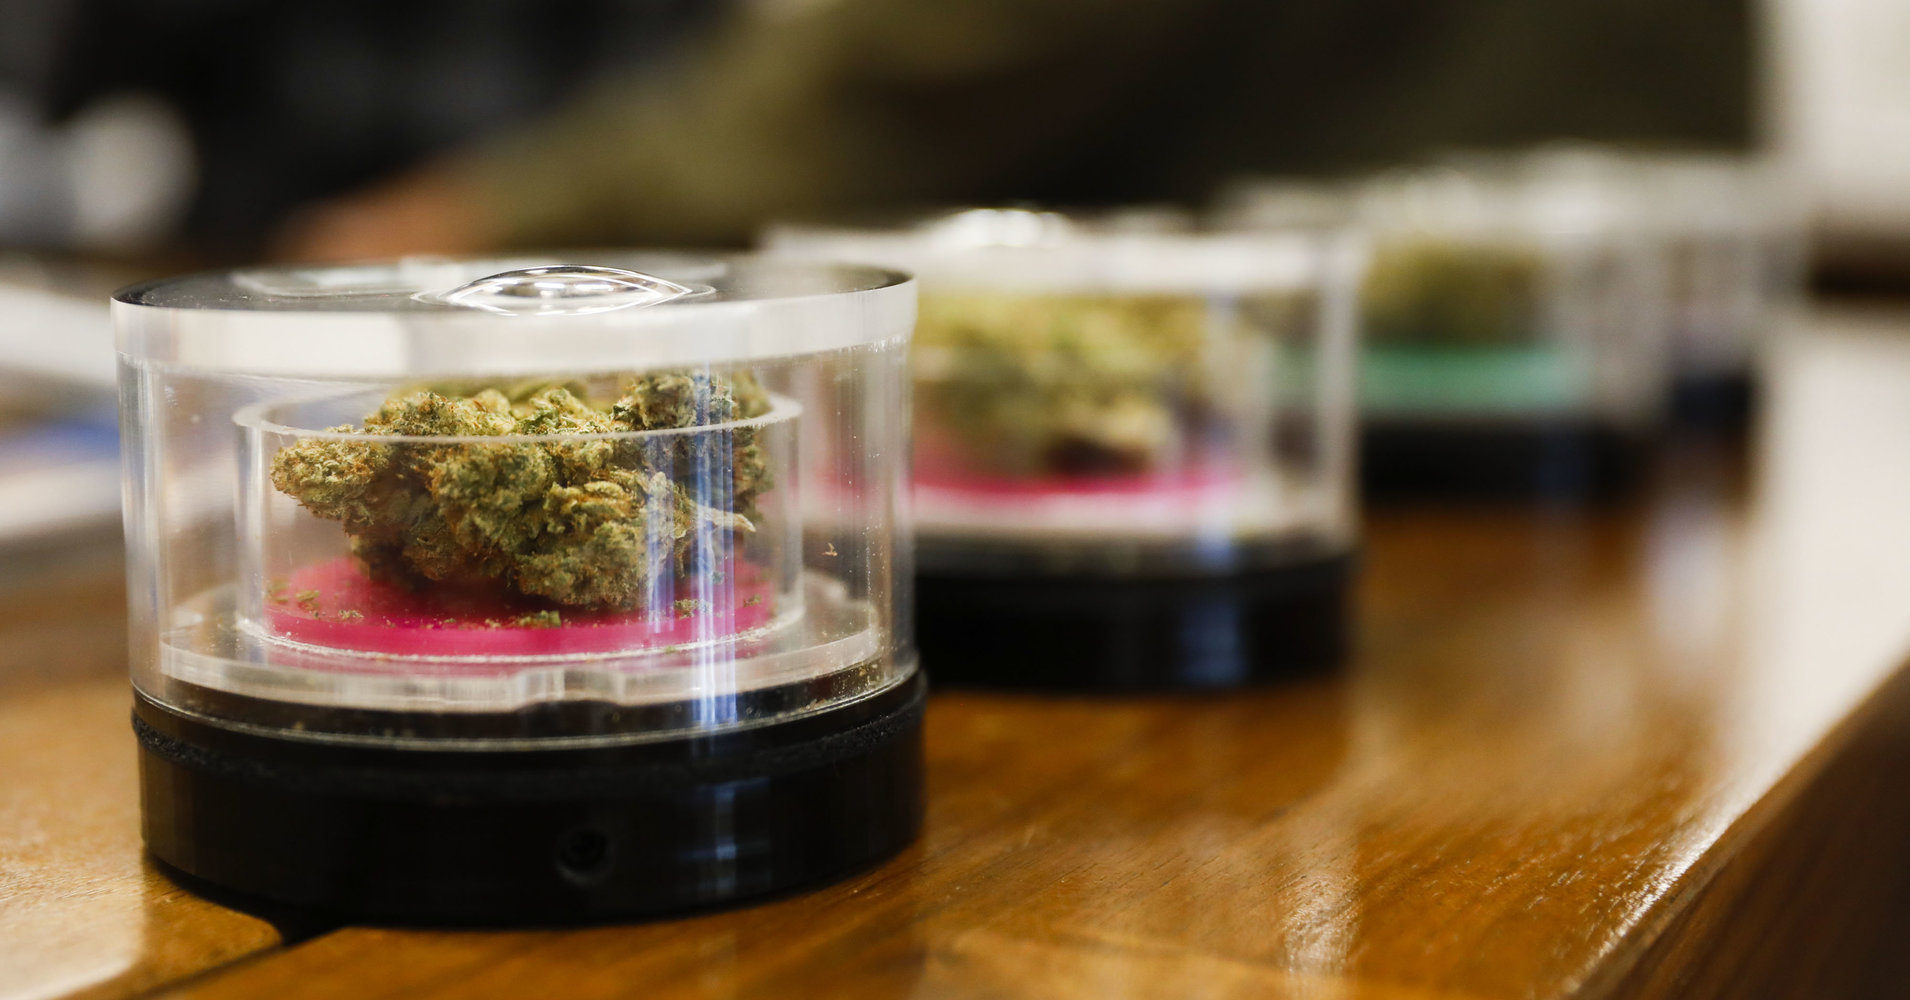 19 Attorneys General Call On Congress To Legalize Banking For Weed Industry